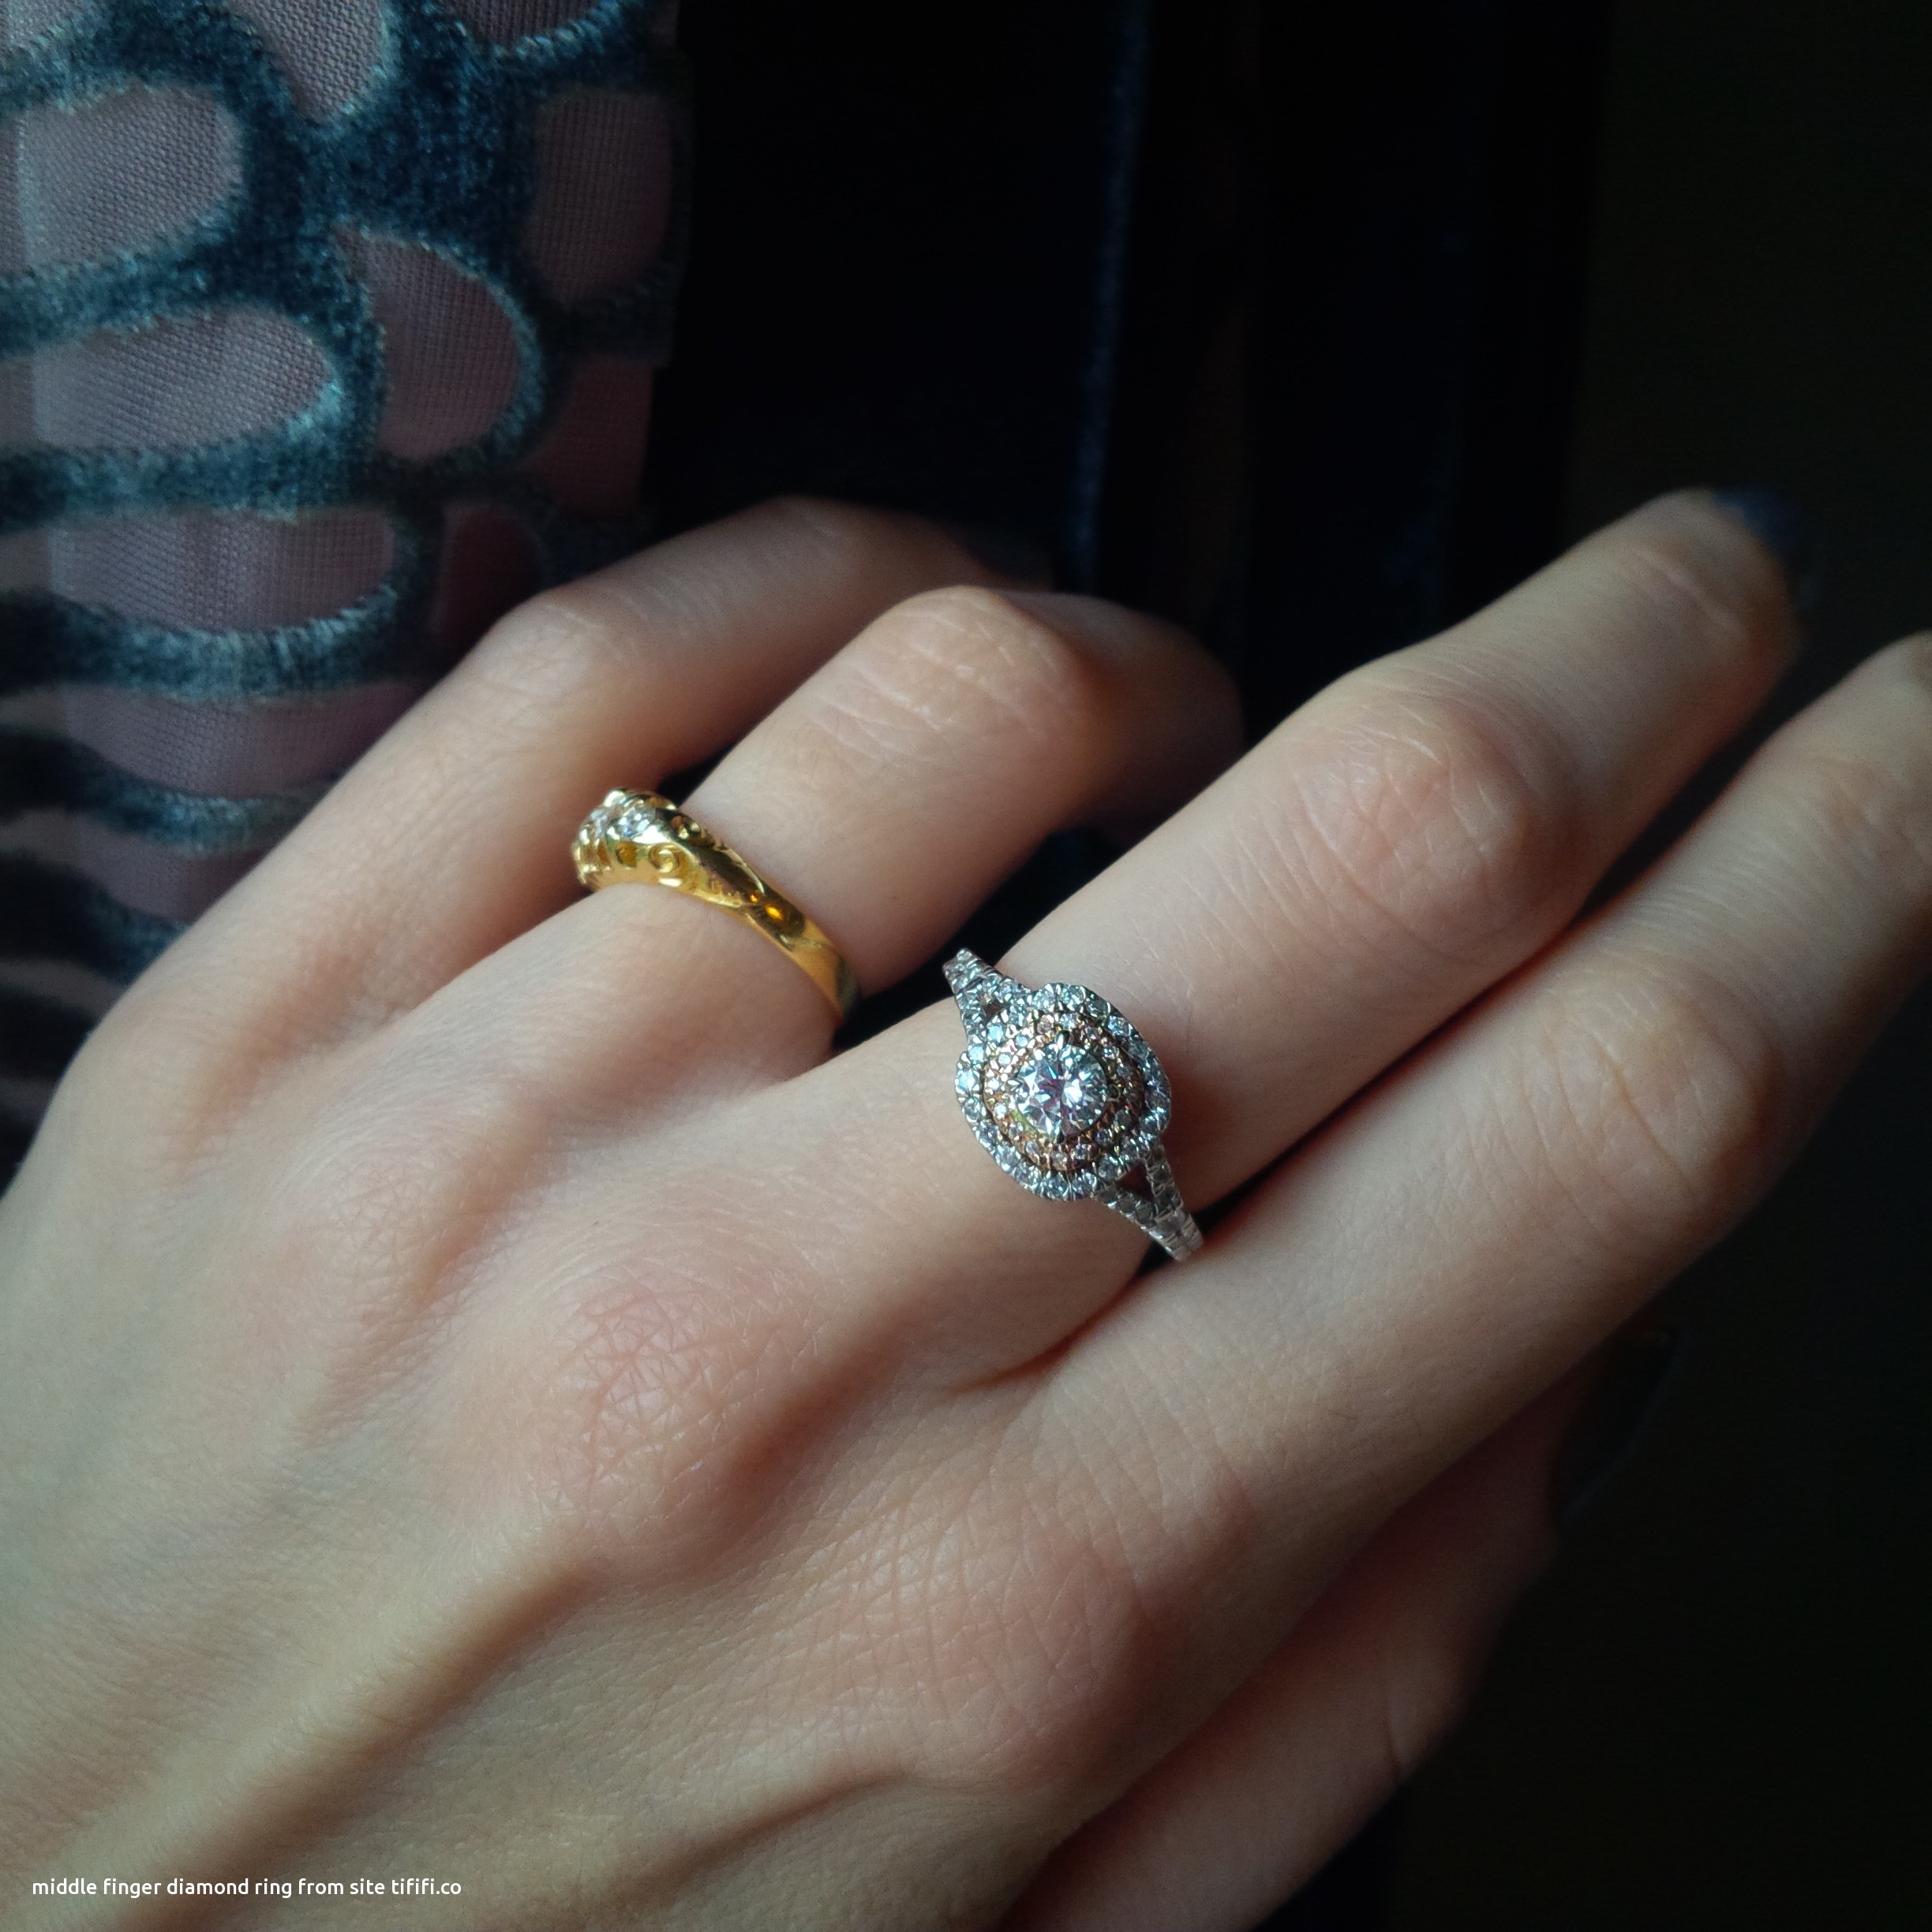 Which Hand Does A Wedding Ring Go On: Middle Finger Diamond Ring Lovely 5 Or Under E Rings Pics